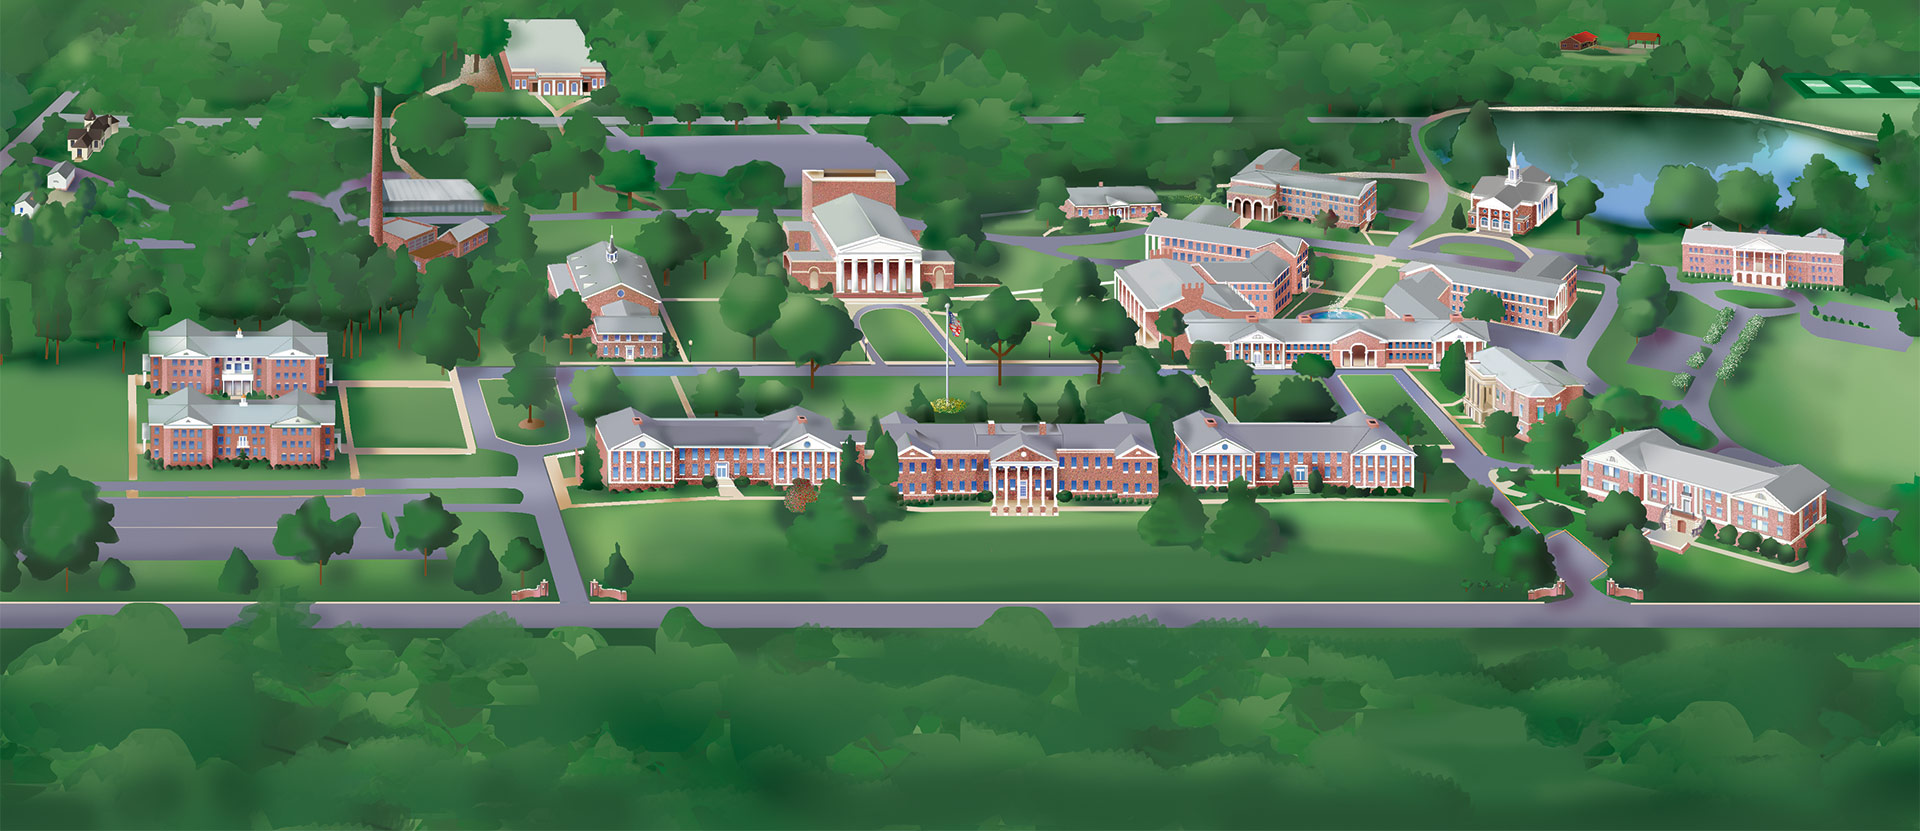 Ariel map of Wesleyan campus